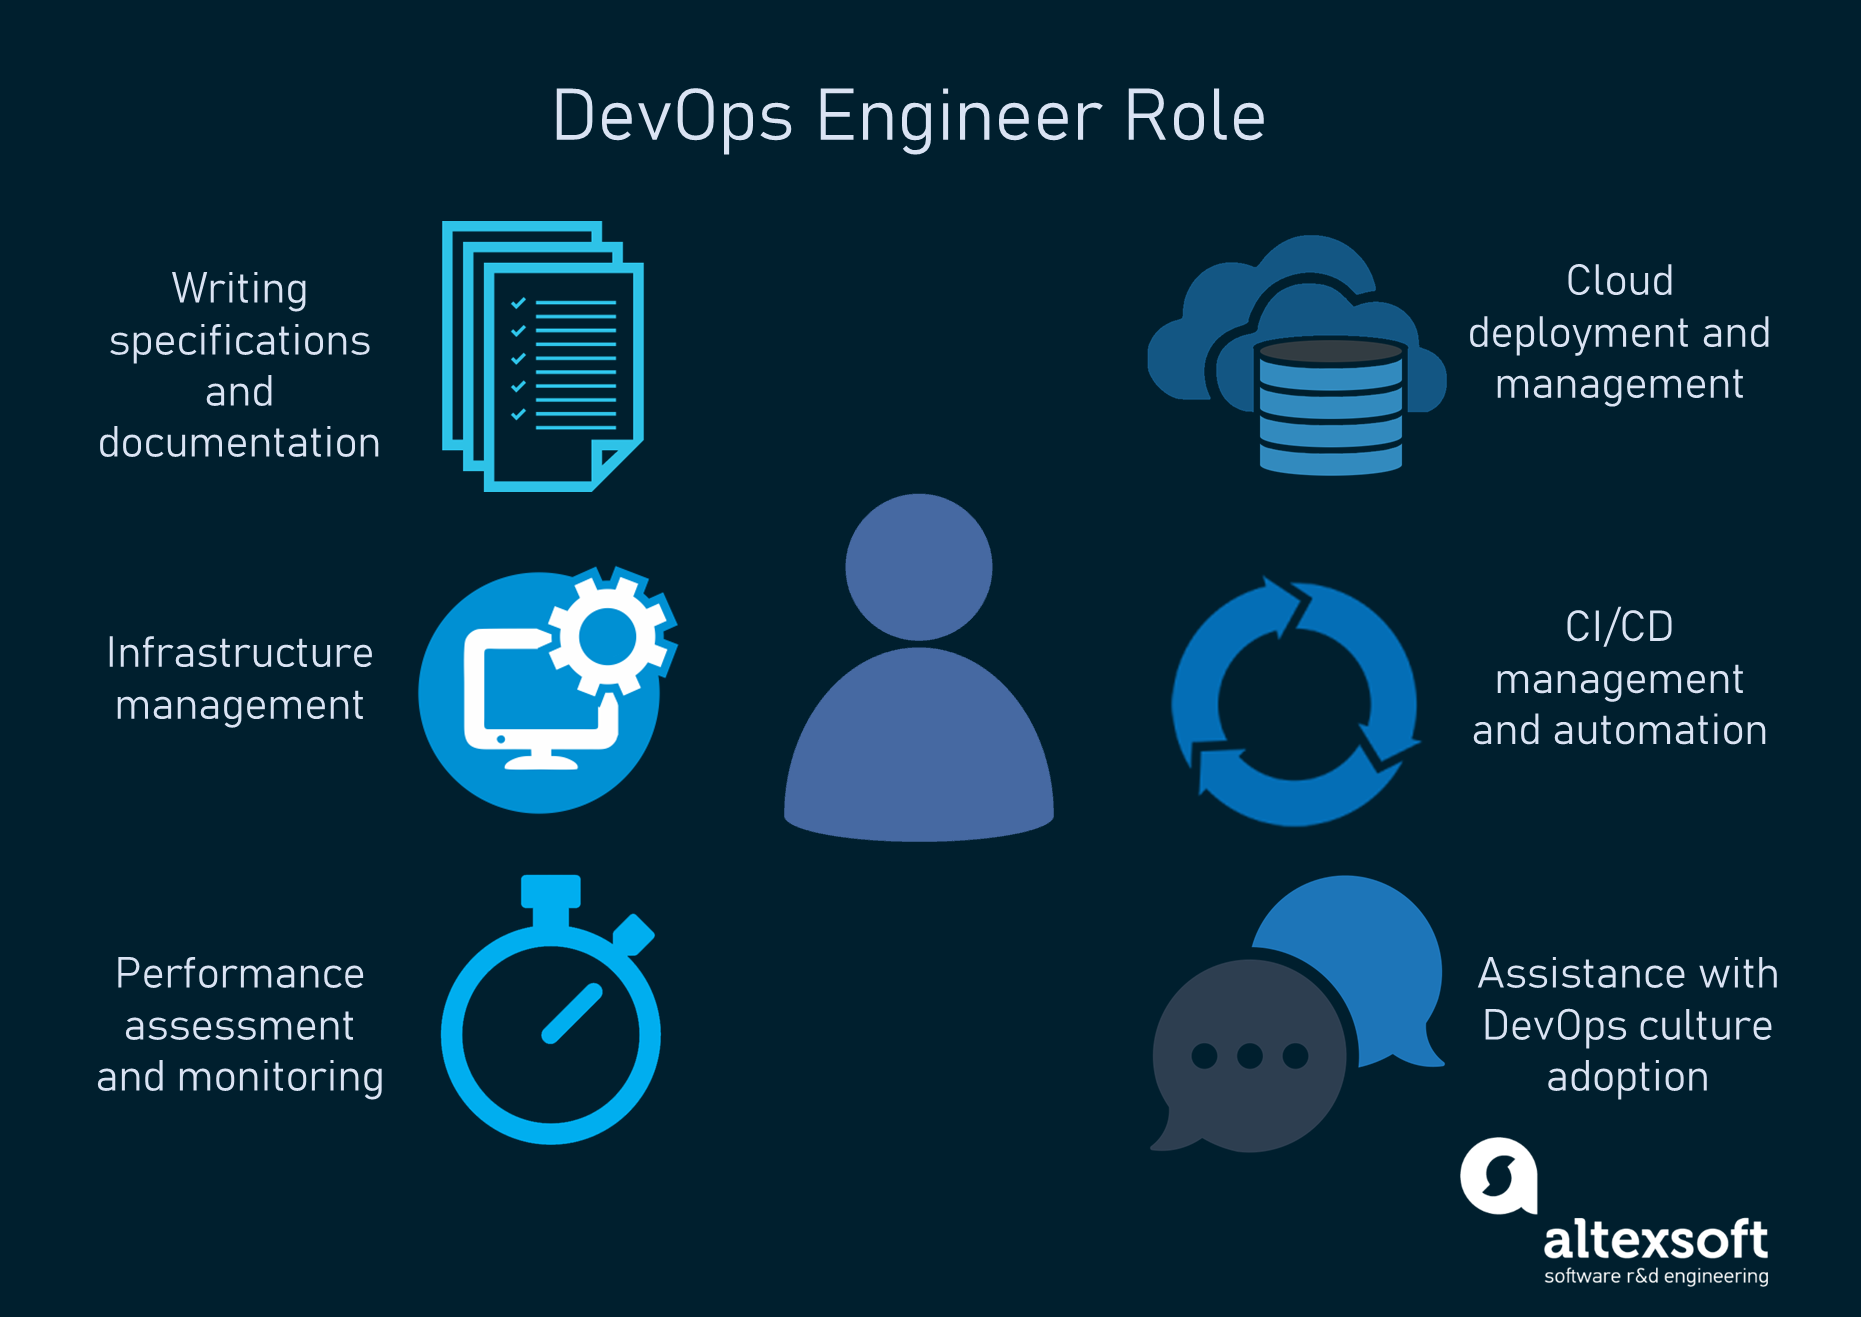 DevOps: Principles, Practices, Tools and DevOps Engineer Role | AltexSoft